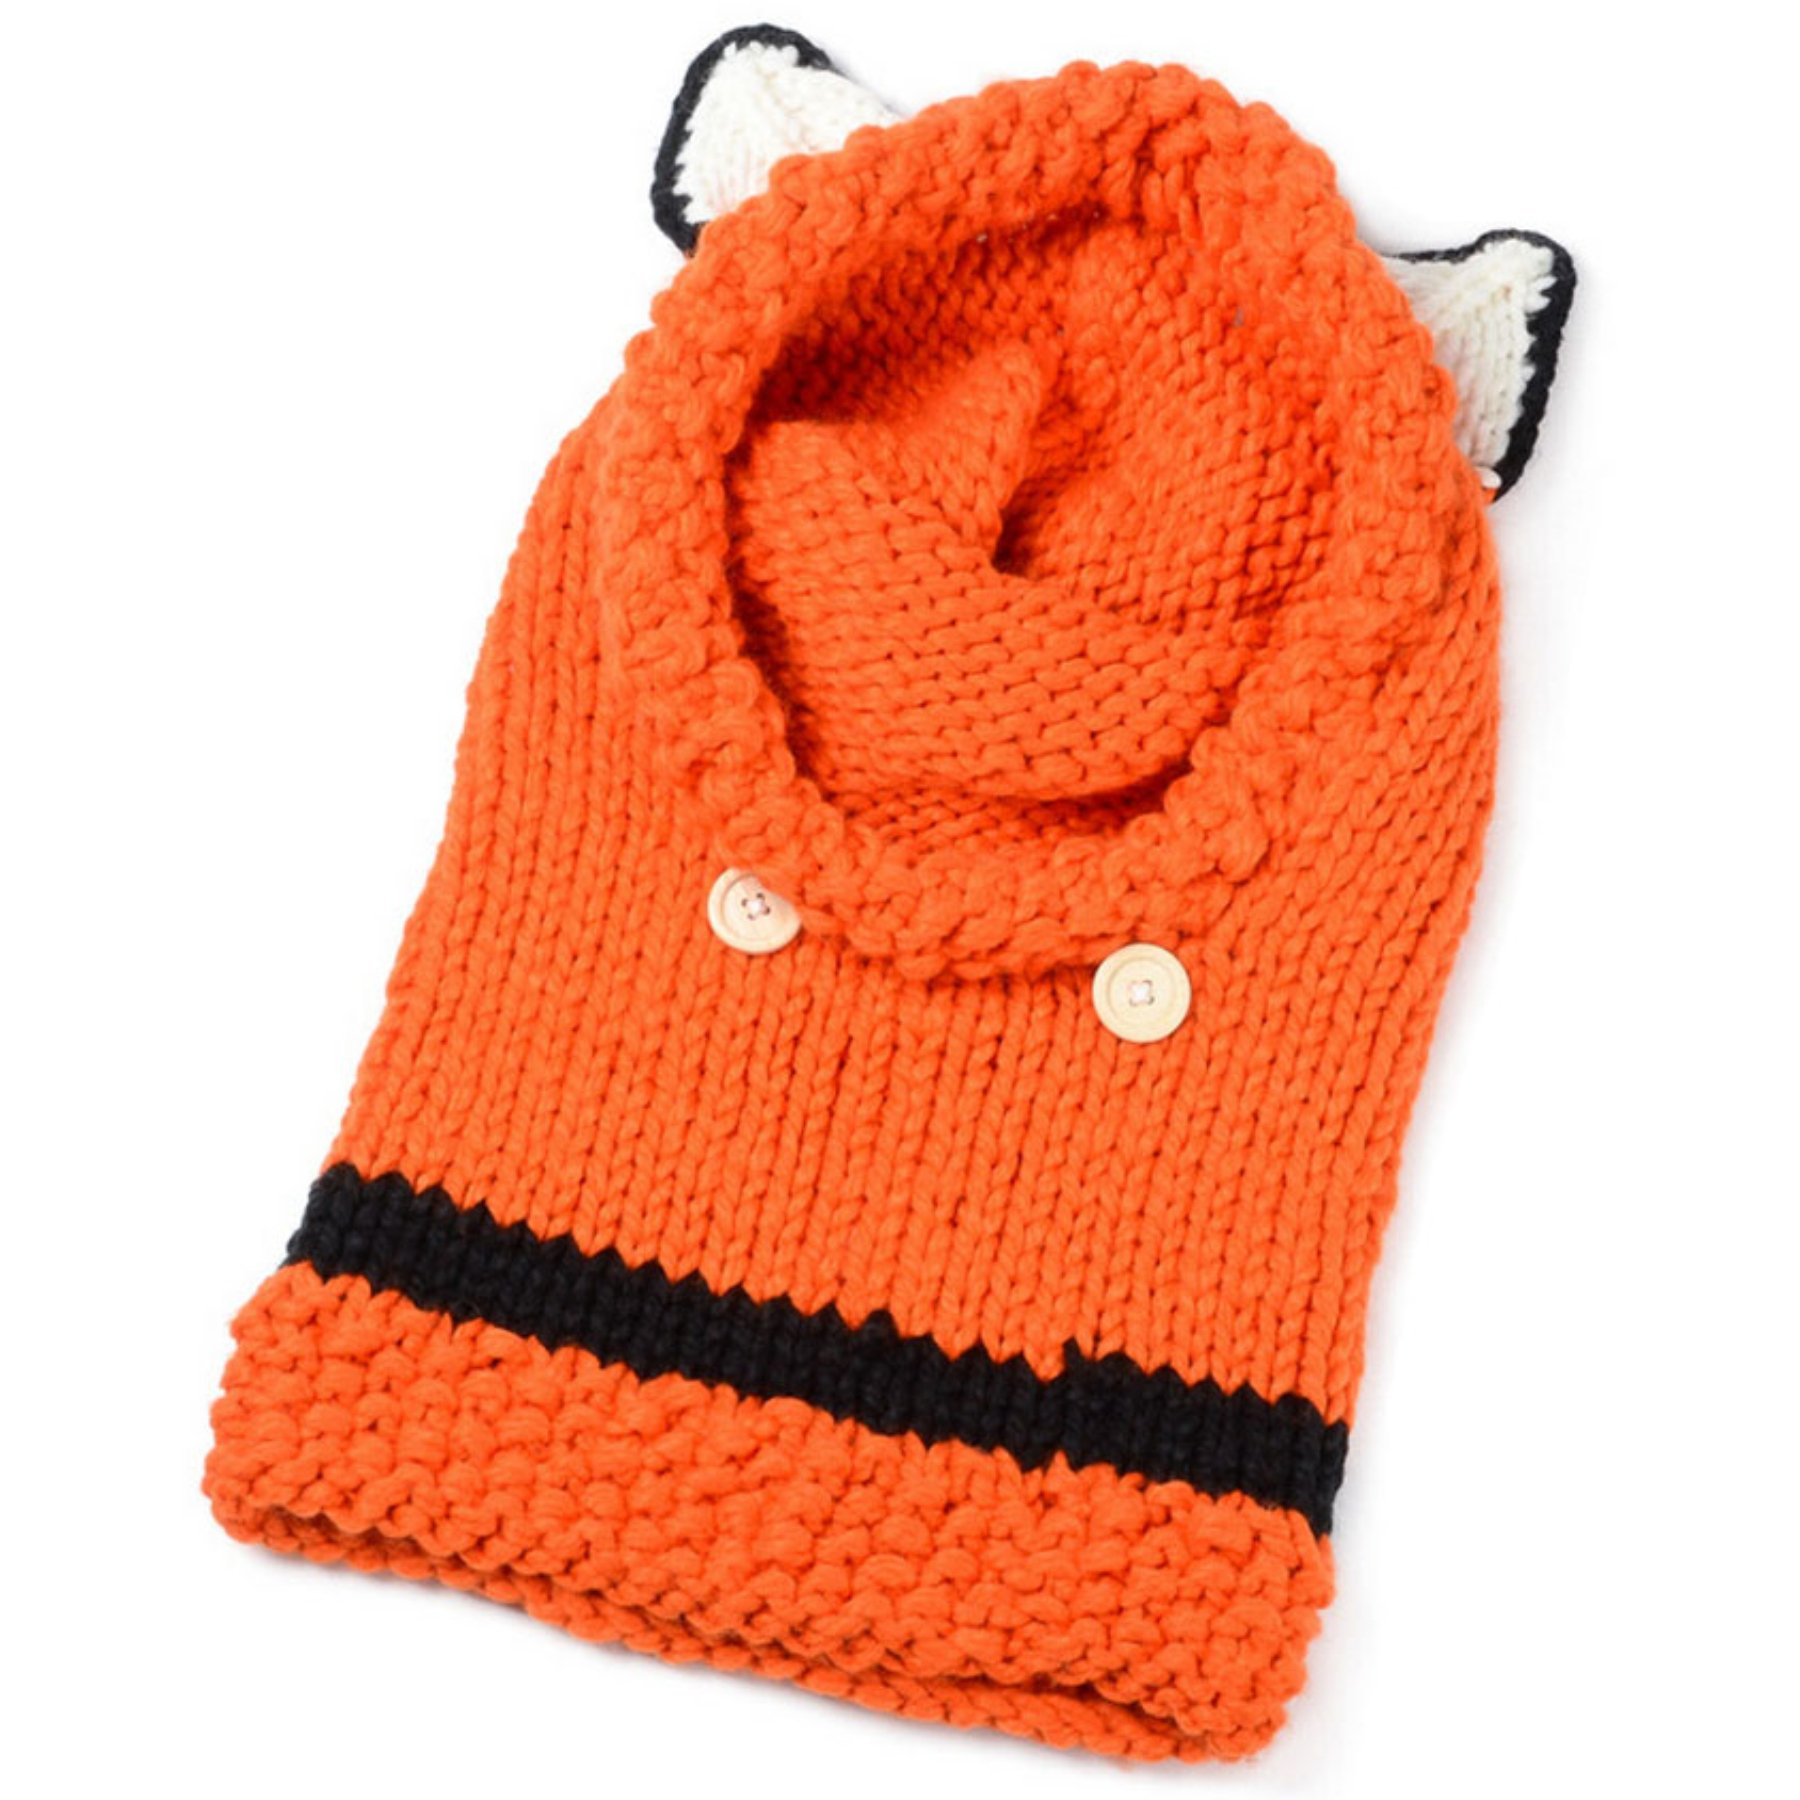 Tomily Animal Fox Ears Wool Cap Knit Hoodie Hand-Crocheted Collar Hood Face Mask Hat Earmuffs